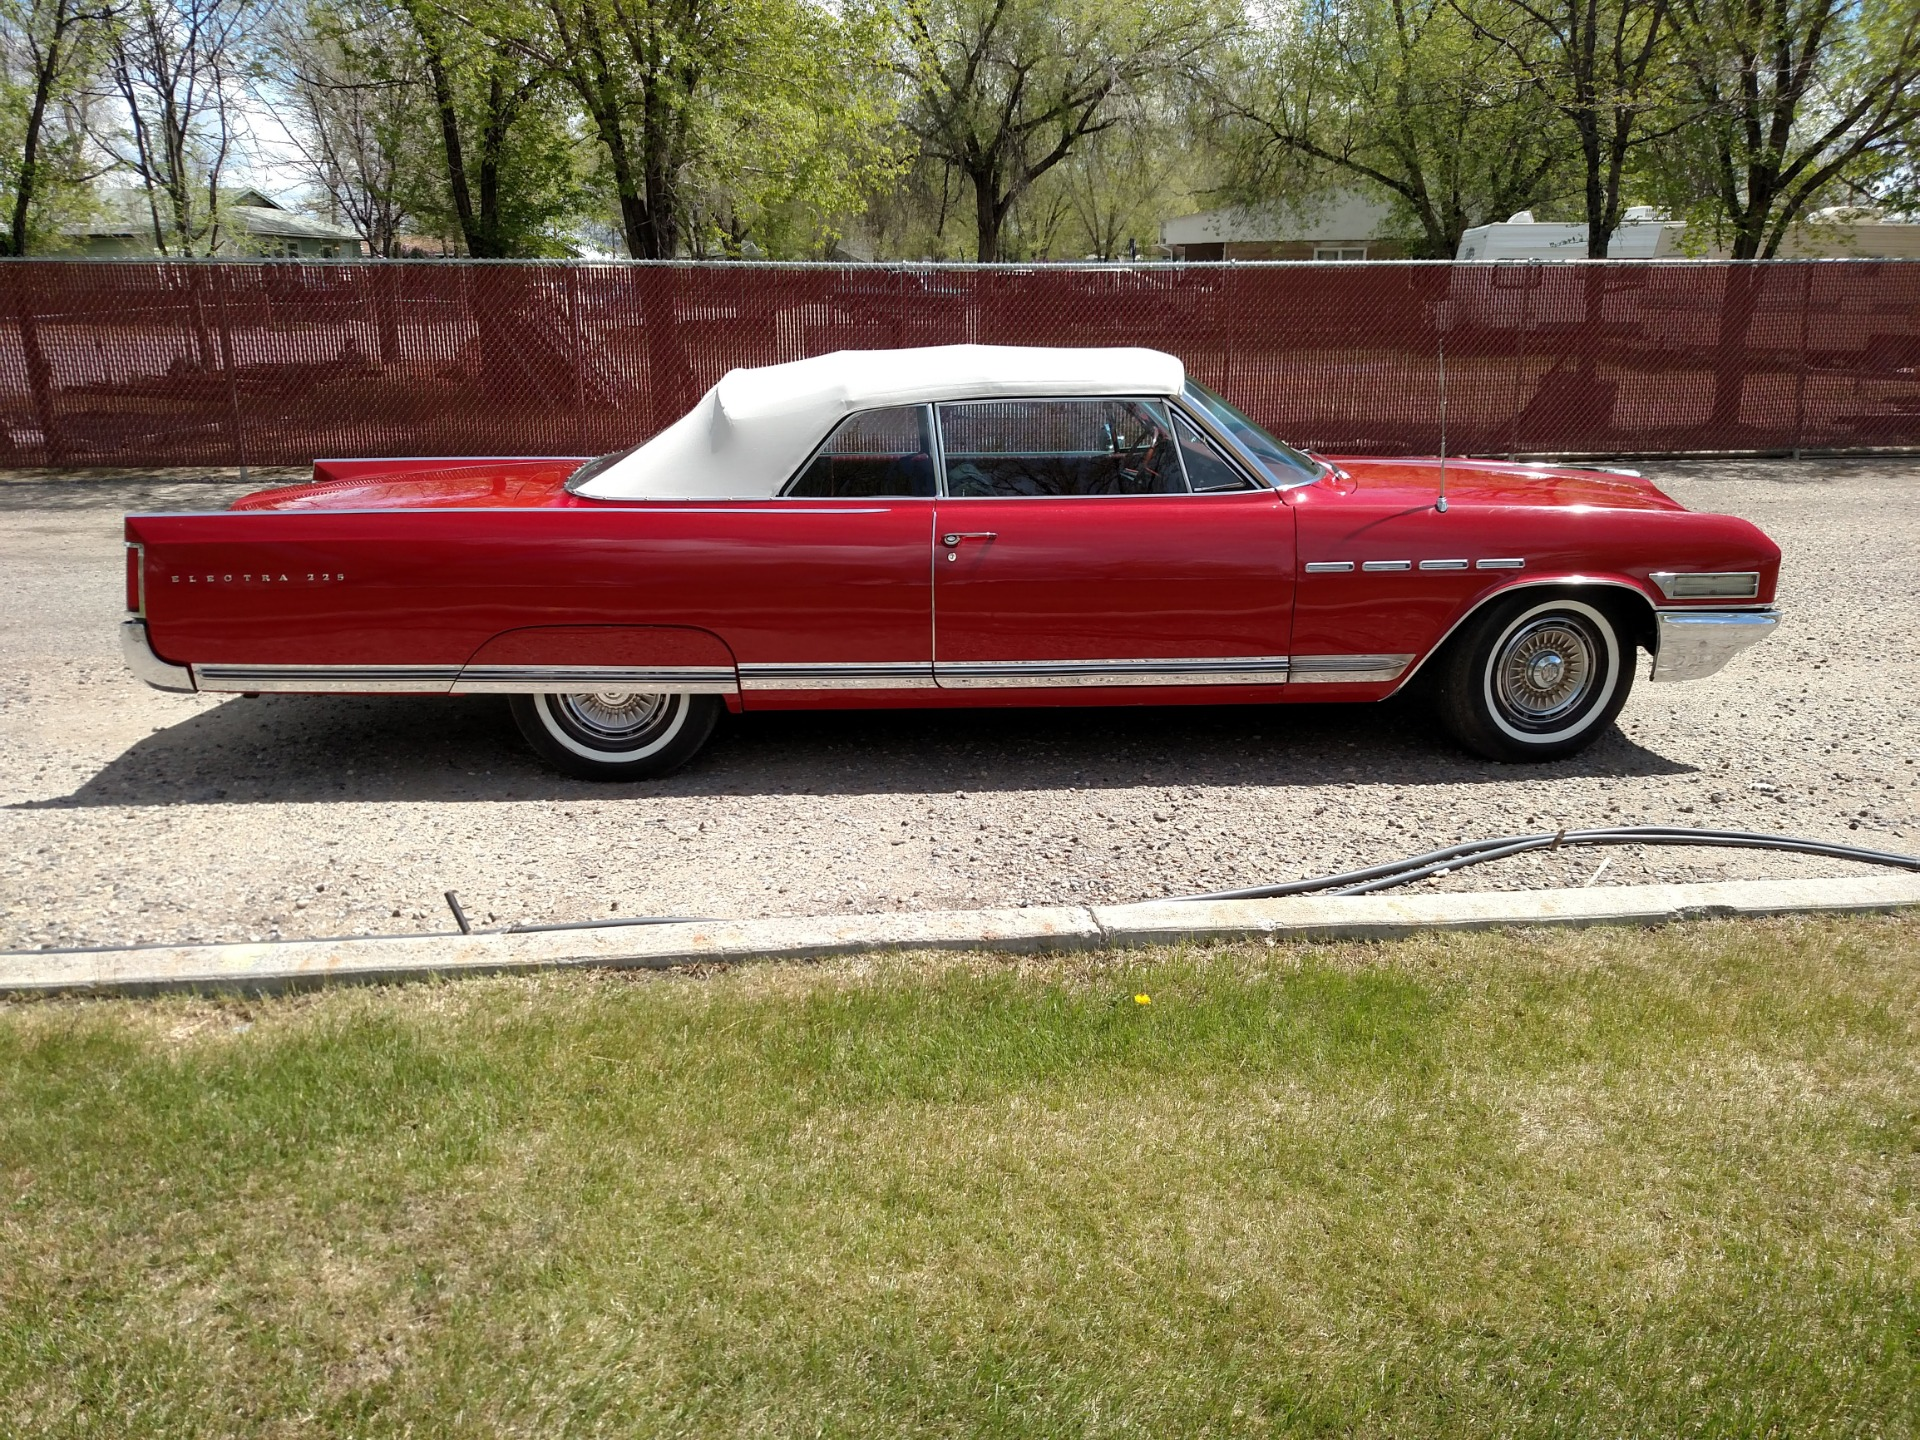 Used 1964 Buick Electra 225 Convertible